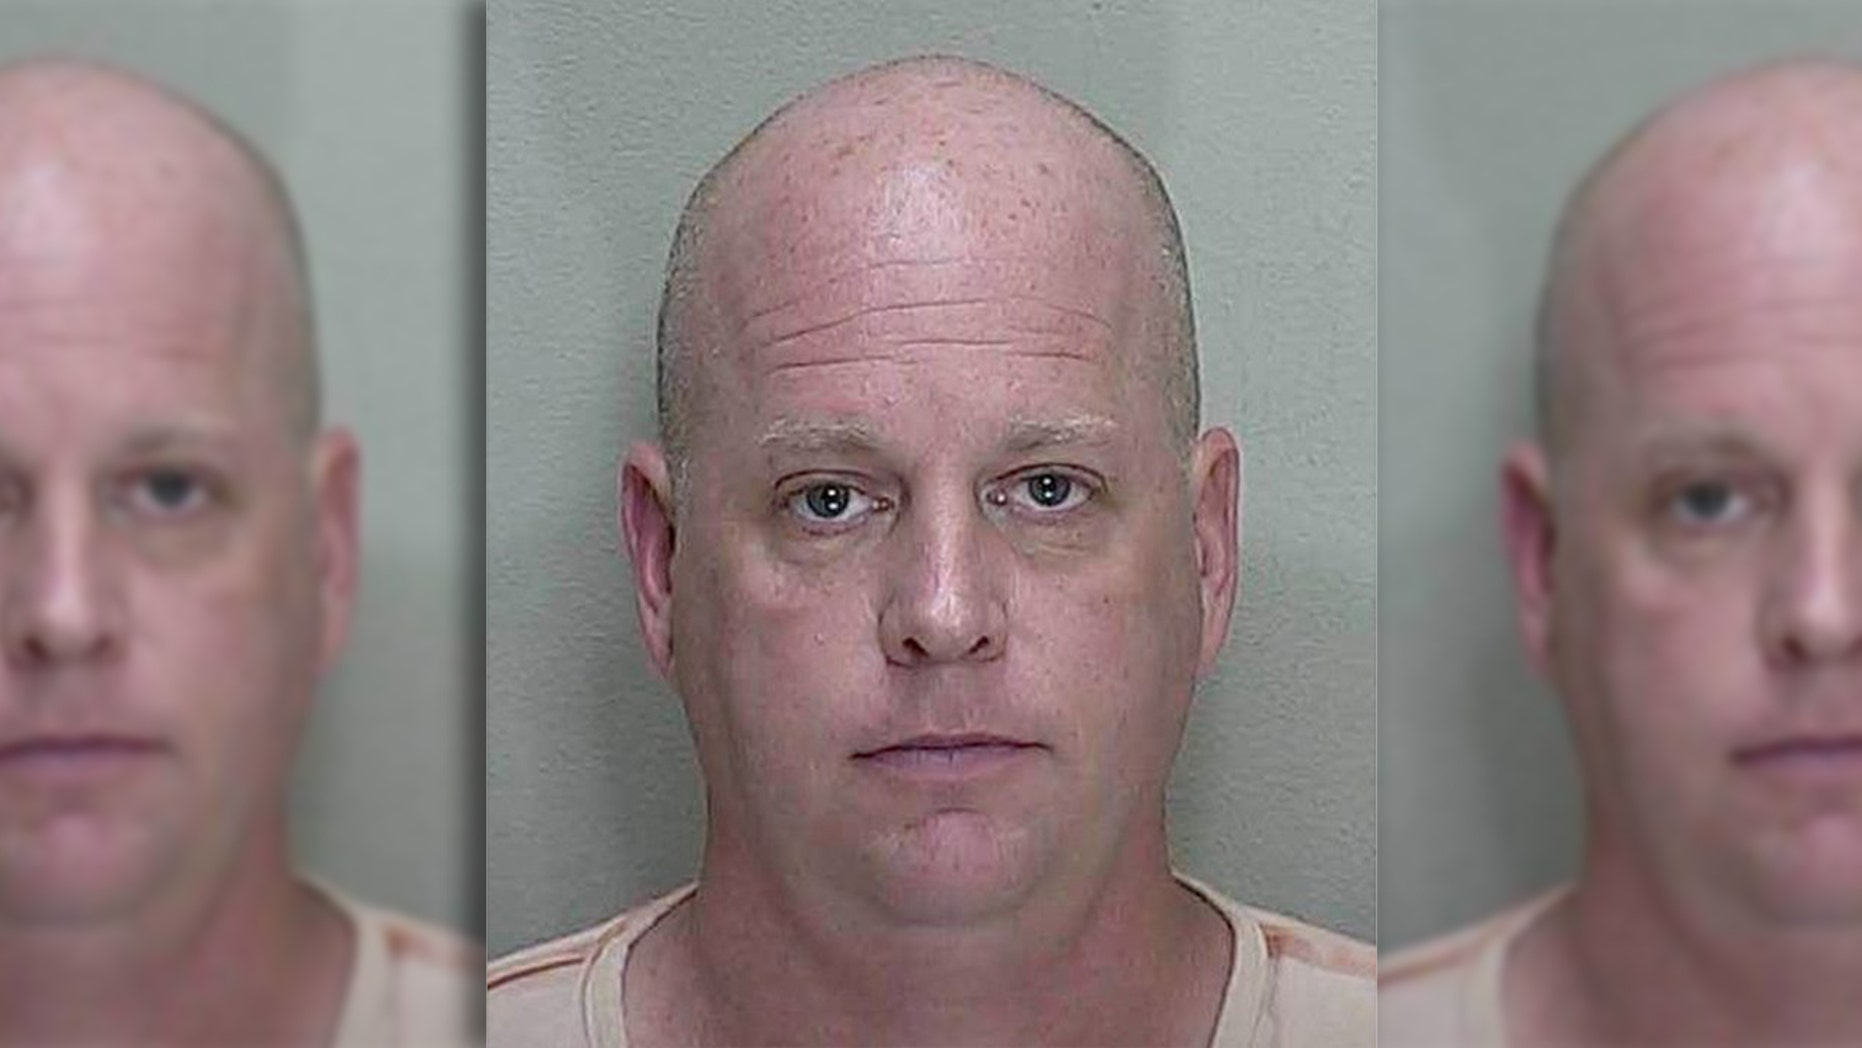 Mark Barnett, a 50-year-old from Ocala, Florida, was found guilty of attempted arson and the possession and making of unregistered destructive devices.